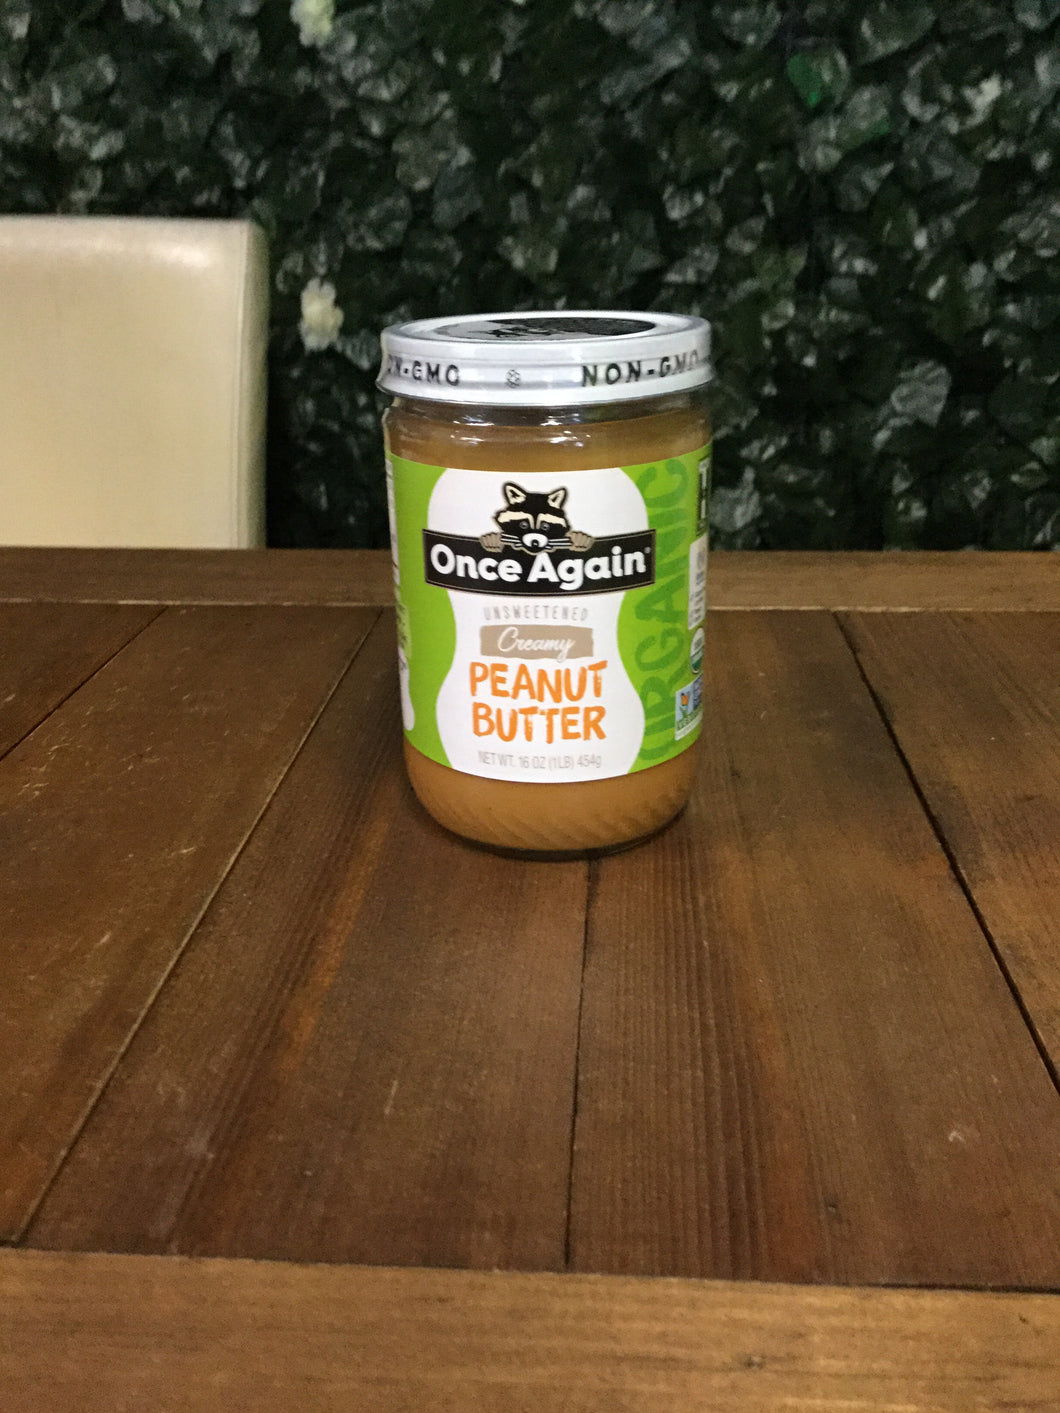 Once Again unsweetened creamy peanut butter 16 oz